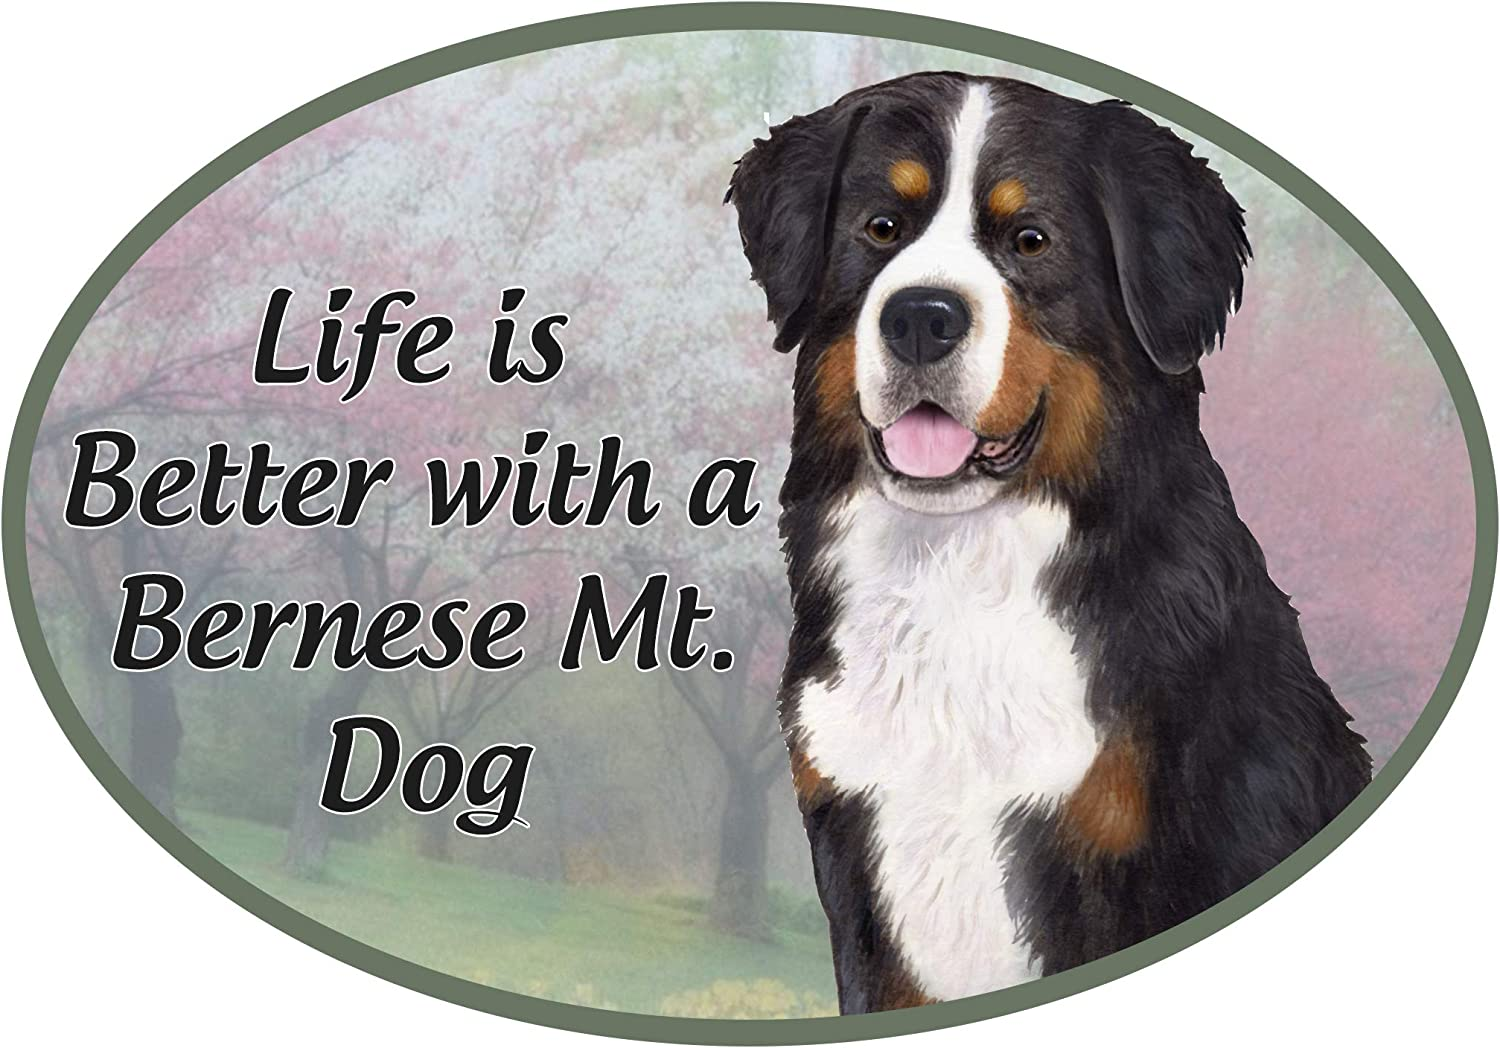 Perfect Cat//Dog Lover Gifts Refrigerator Magnets UV Protected Dog Breed Magnets Australian Shepherd Superior Quality Car Magnets